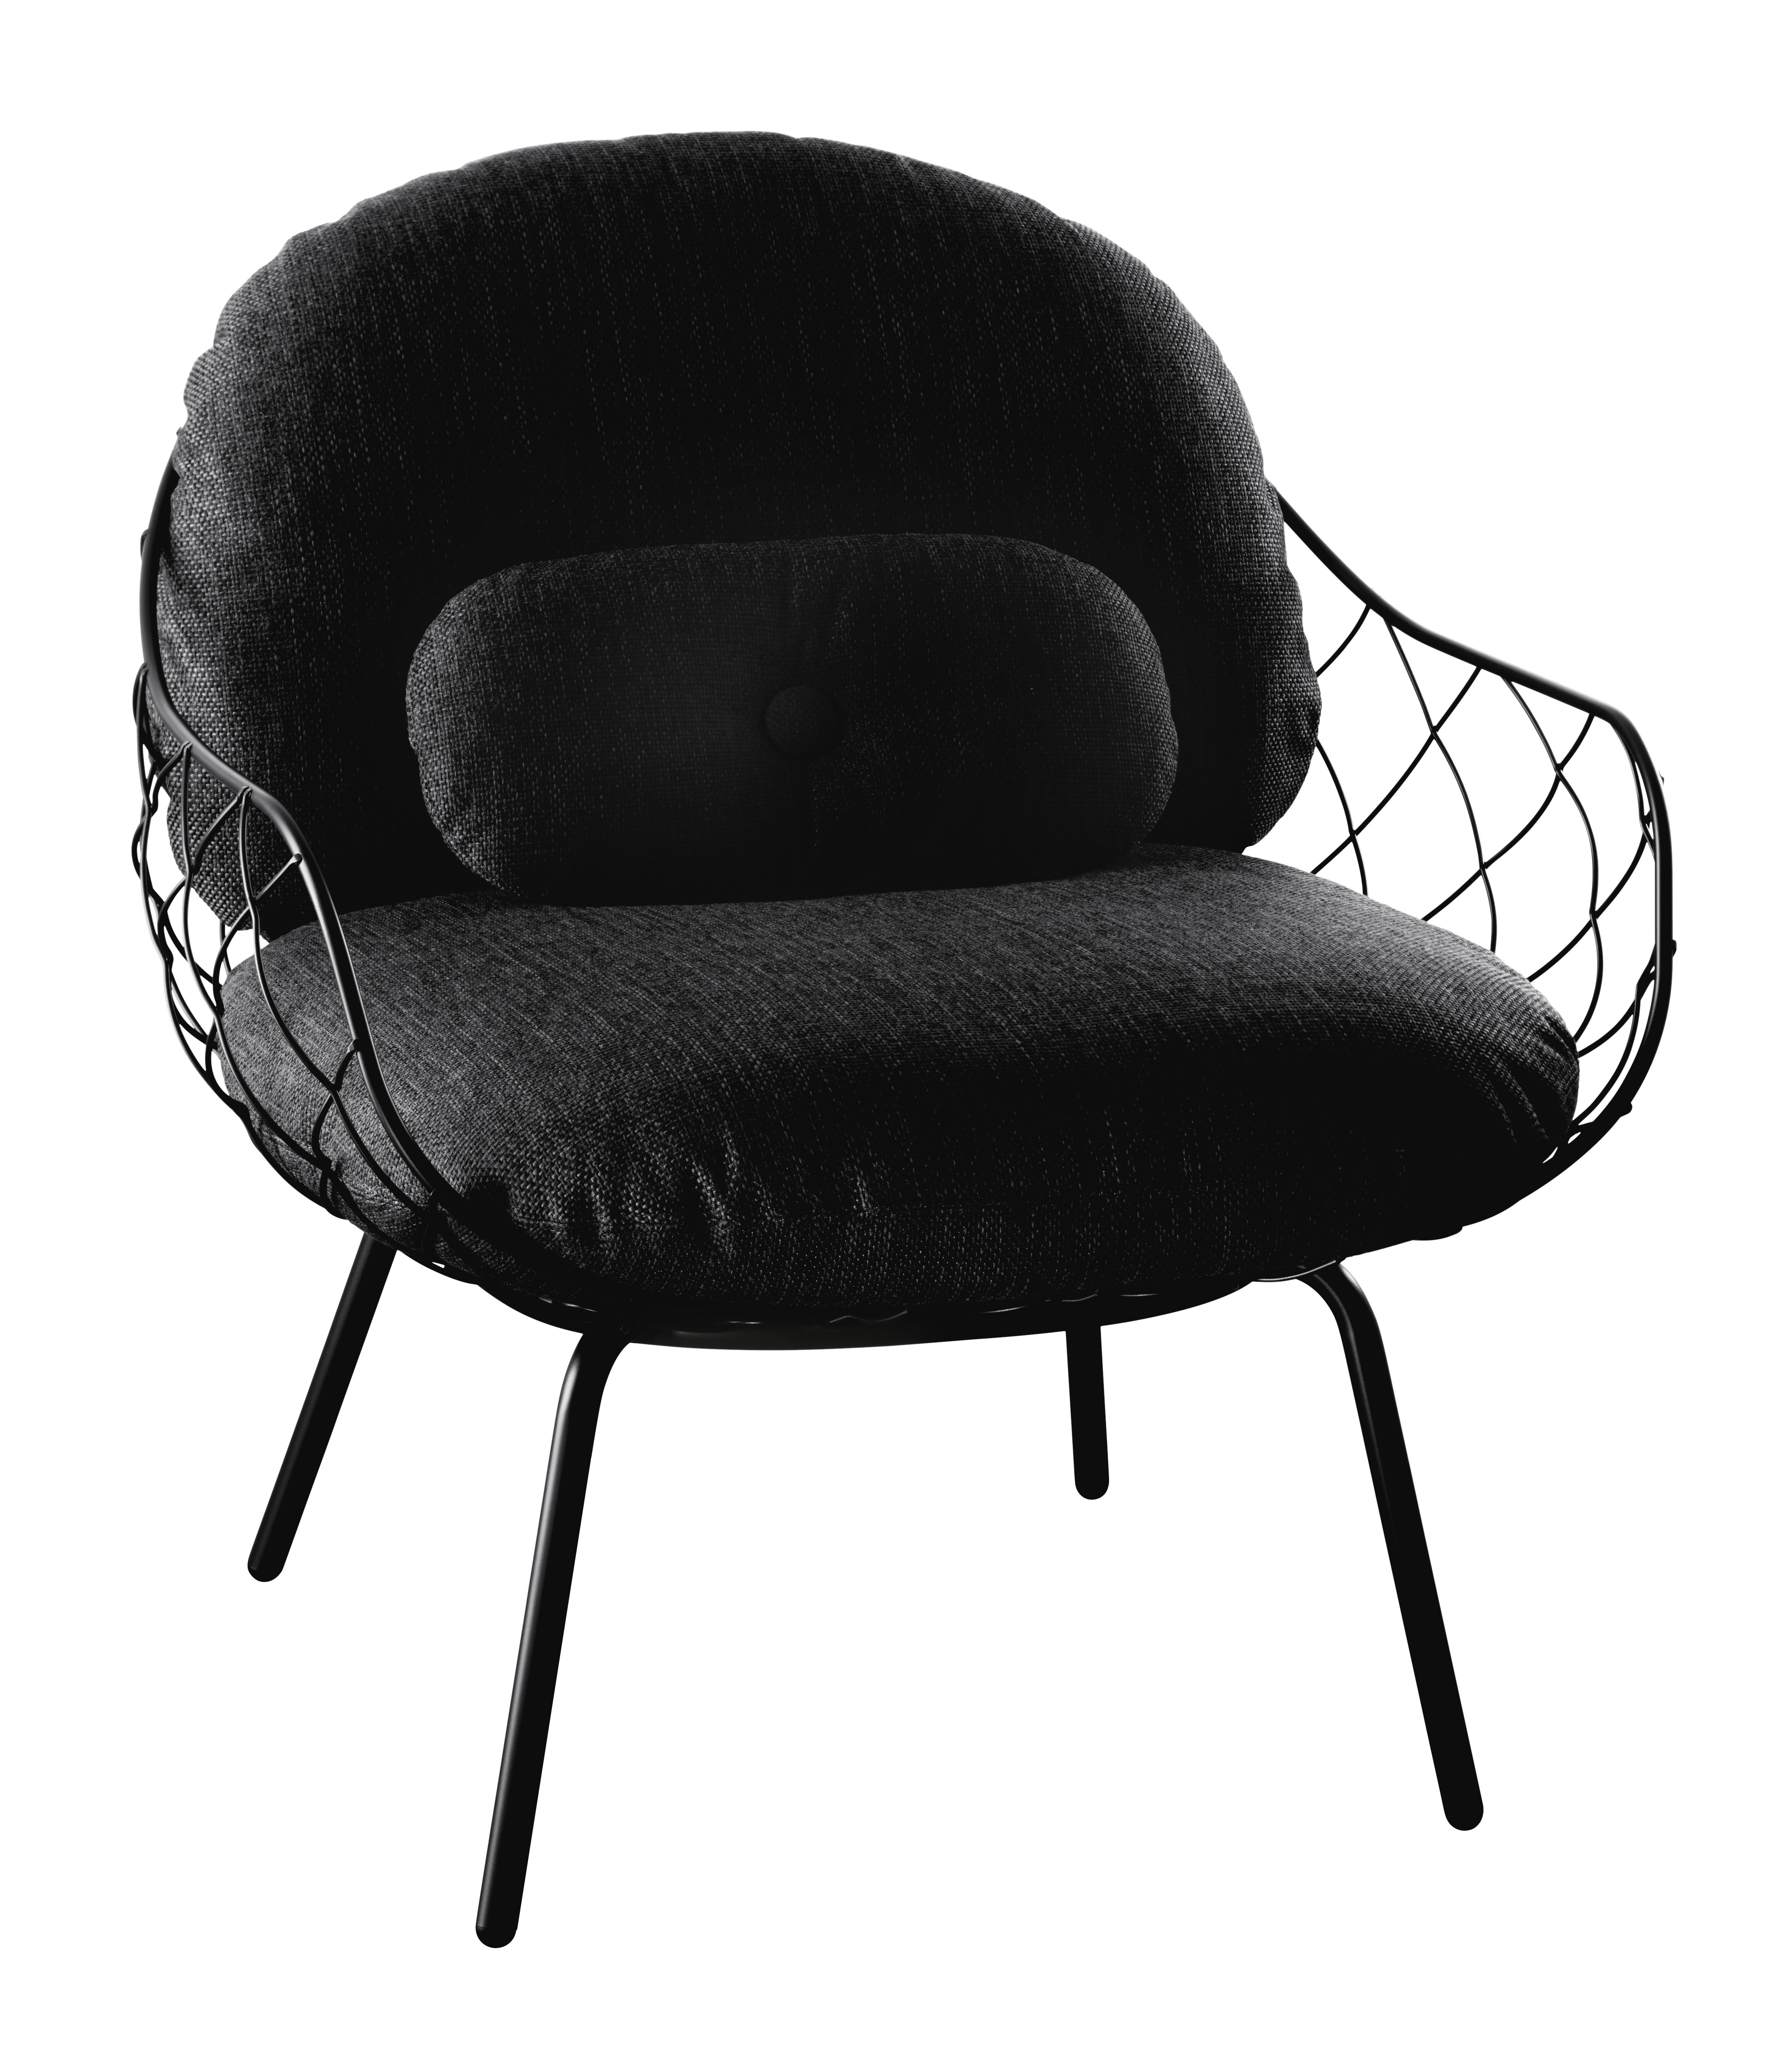 Furniture - Armchairs - Pina Outdoor Padded armchair - Fabric - With small back cushion by Magis - Black structure / Black cushions - Expanded polyurethane foam, Fabric, Varnished steel